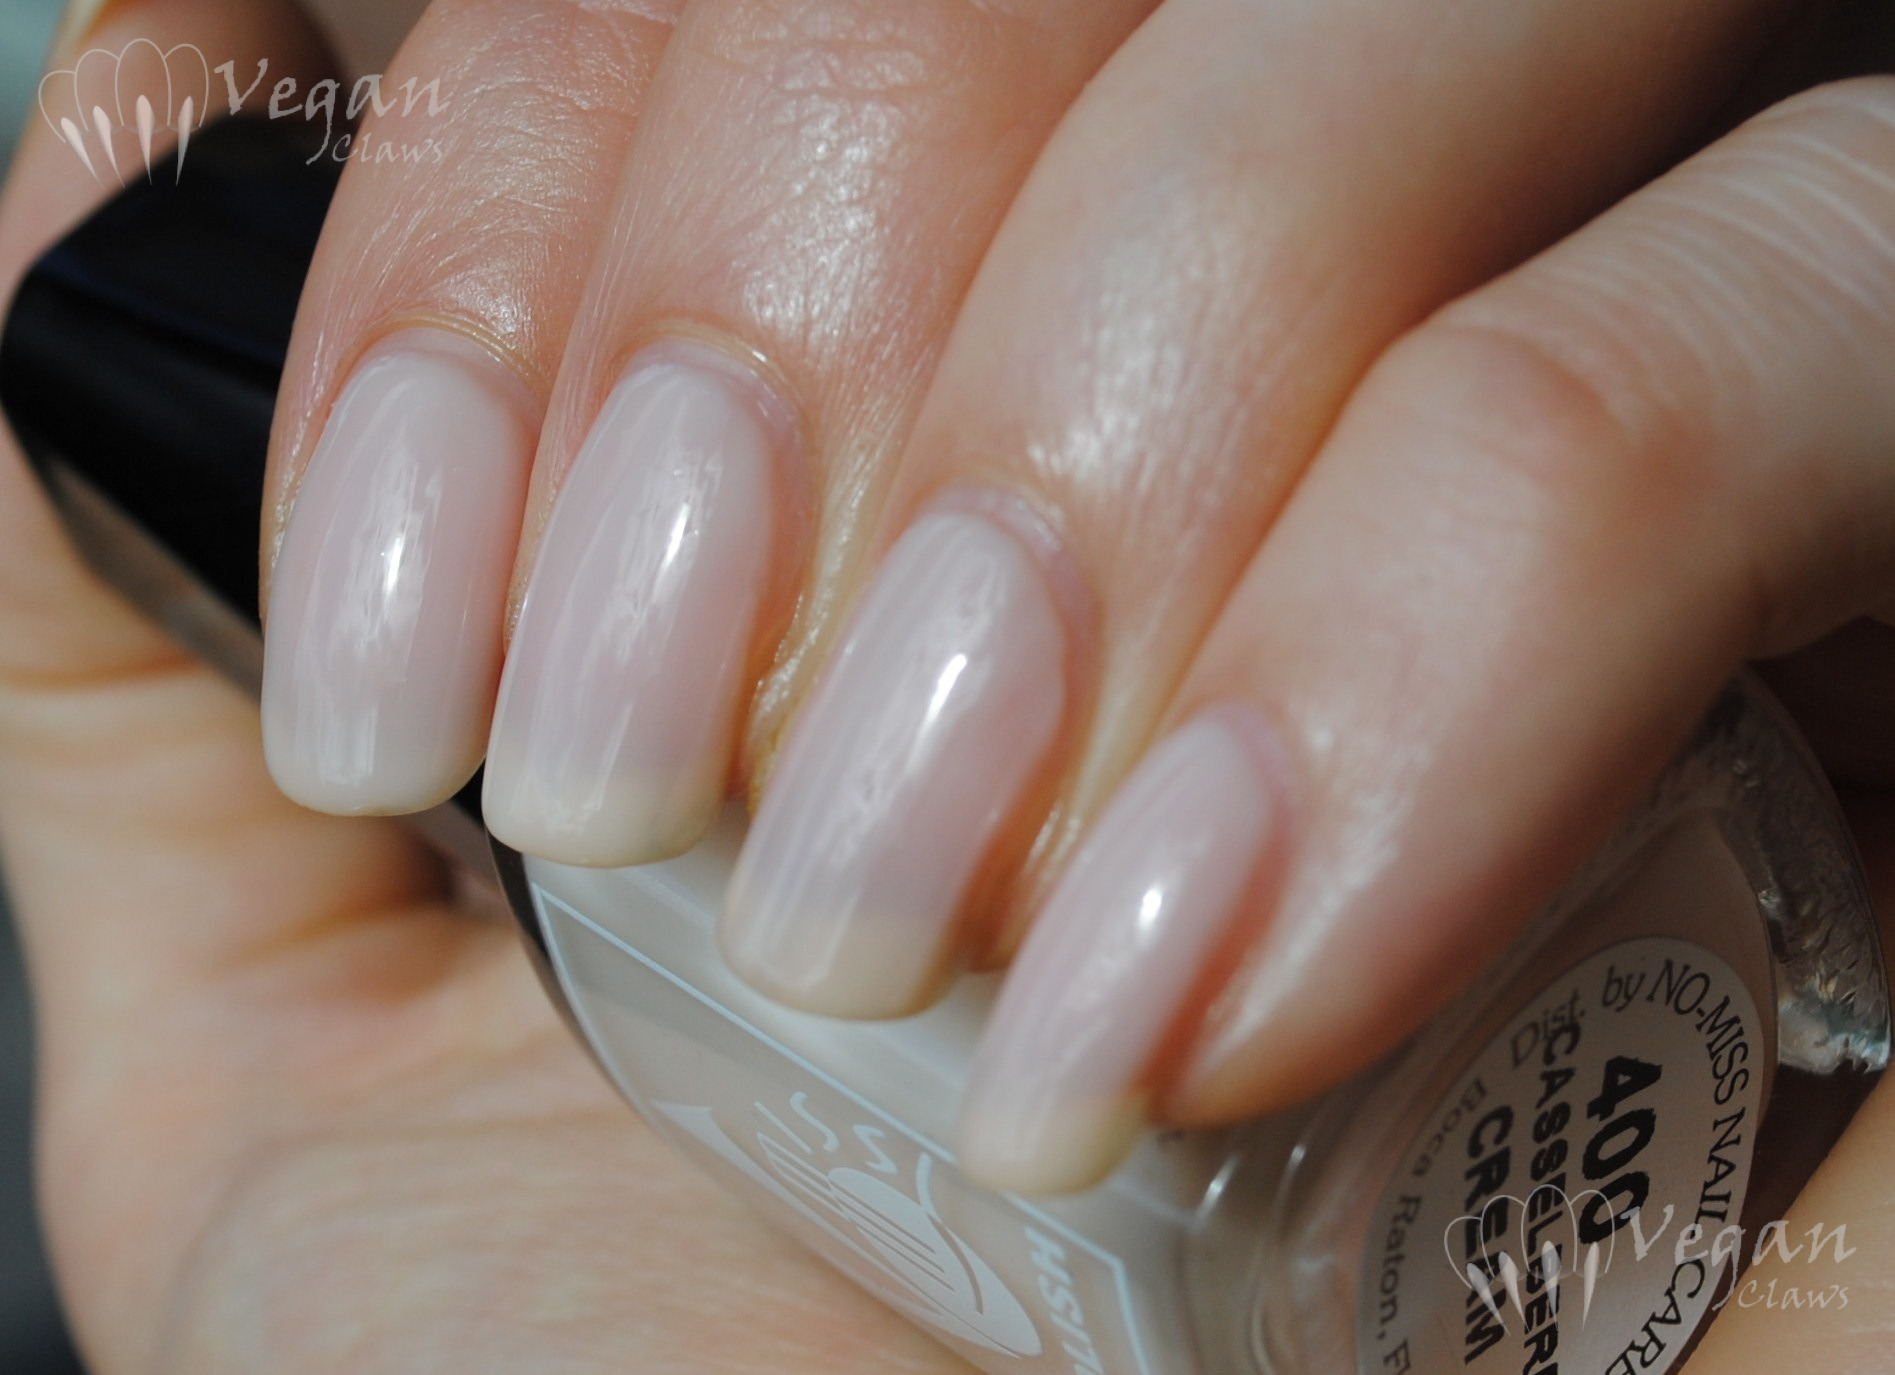 sheer | Vegan Claws